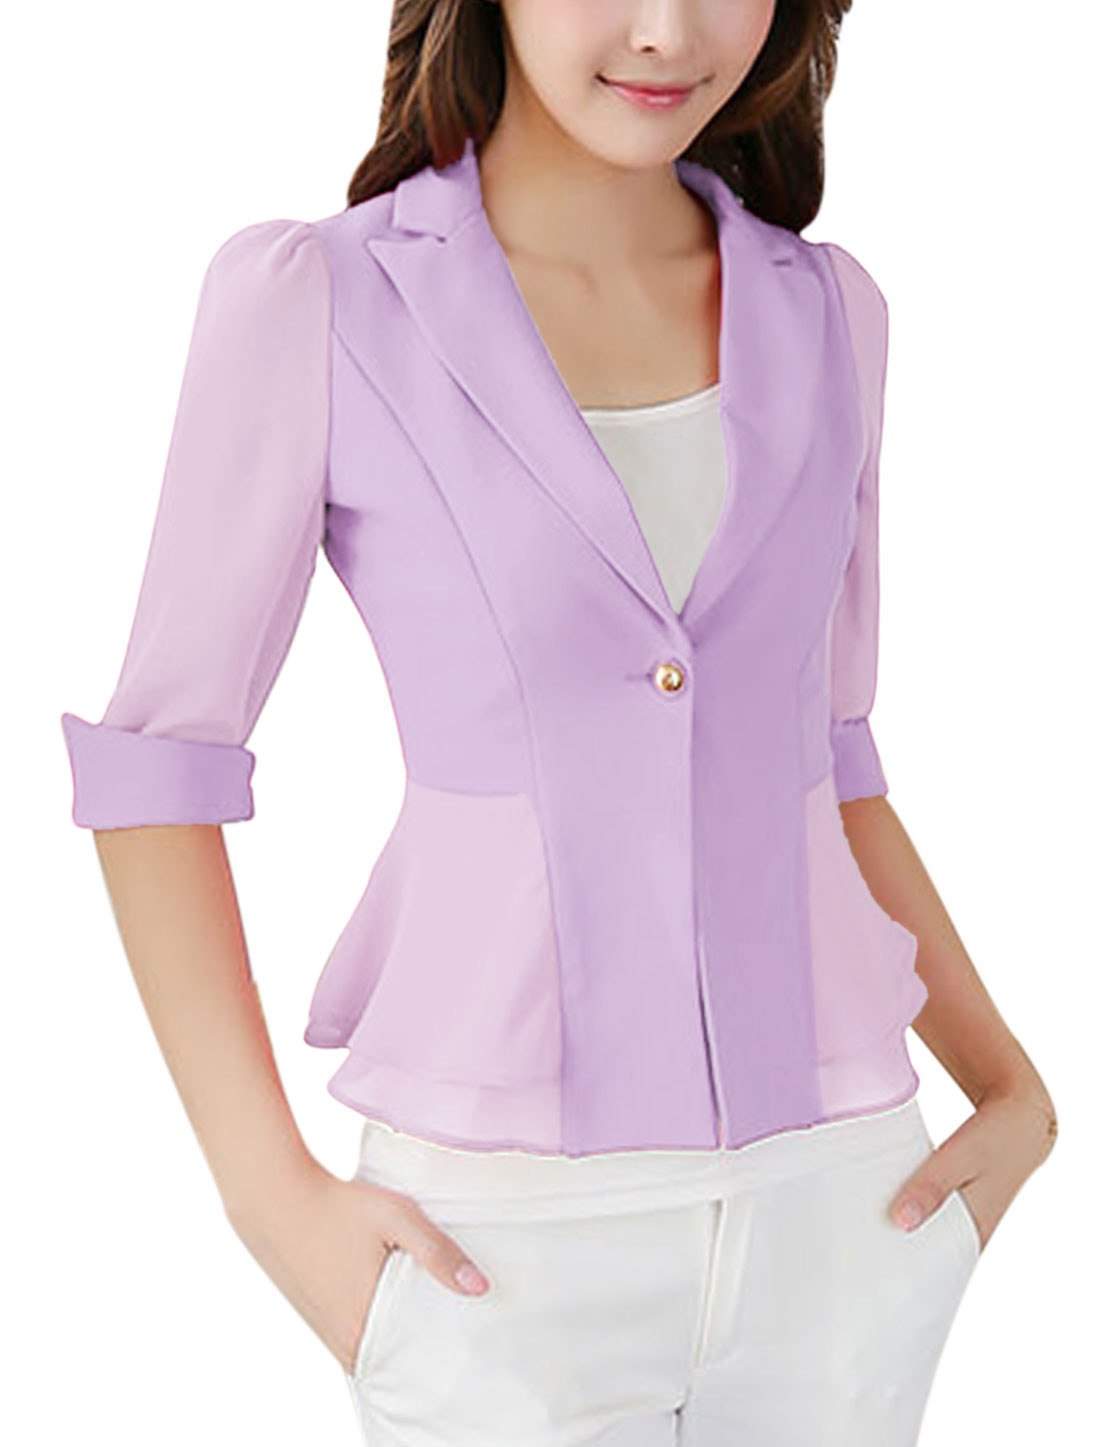 Lady Notched Lapel Flouncing Design Chiffon Panel Blazer Jacket Lavender S